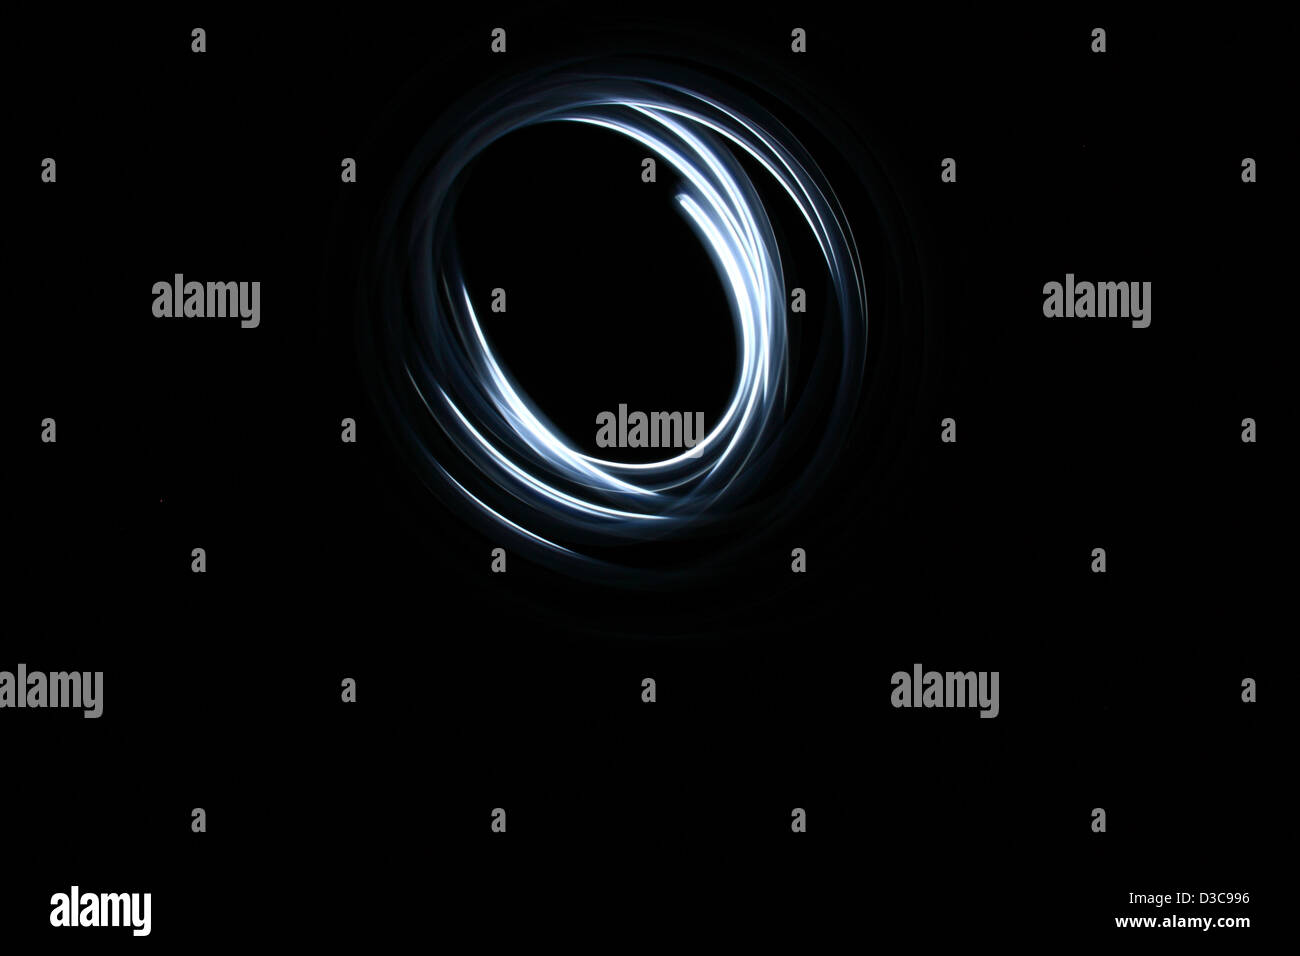 painted circle with light in shape of black hole - Stock Image